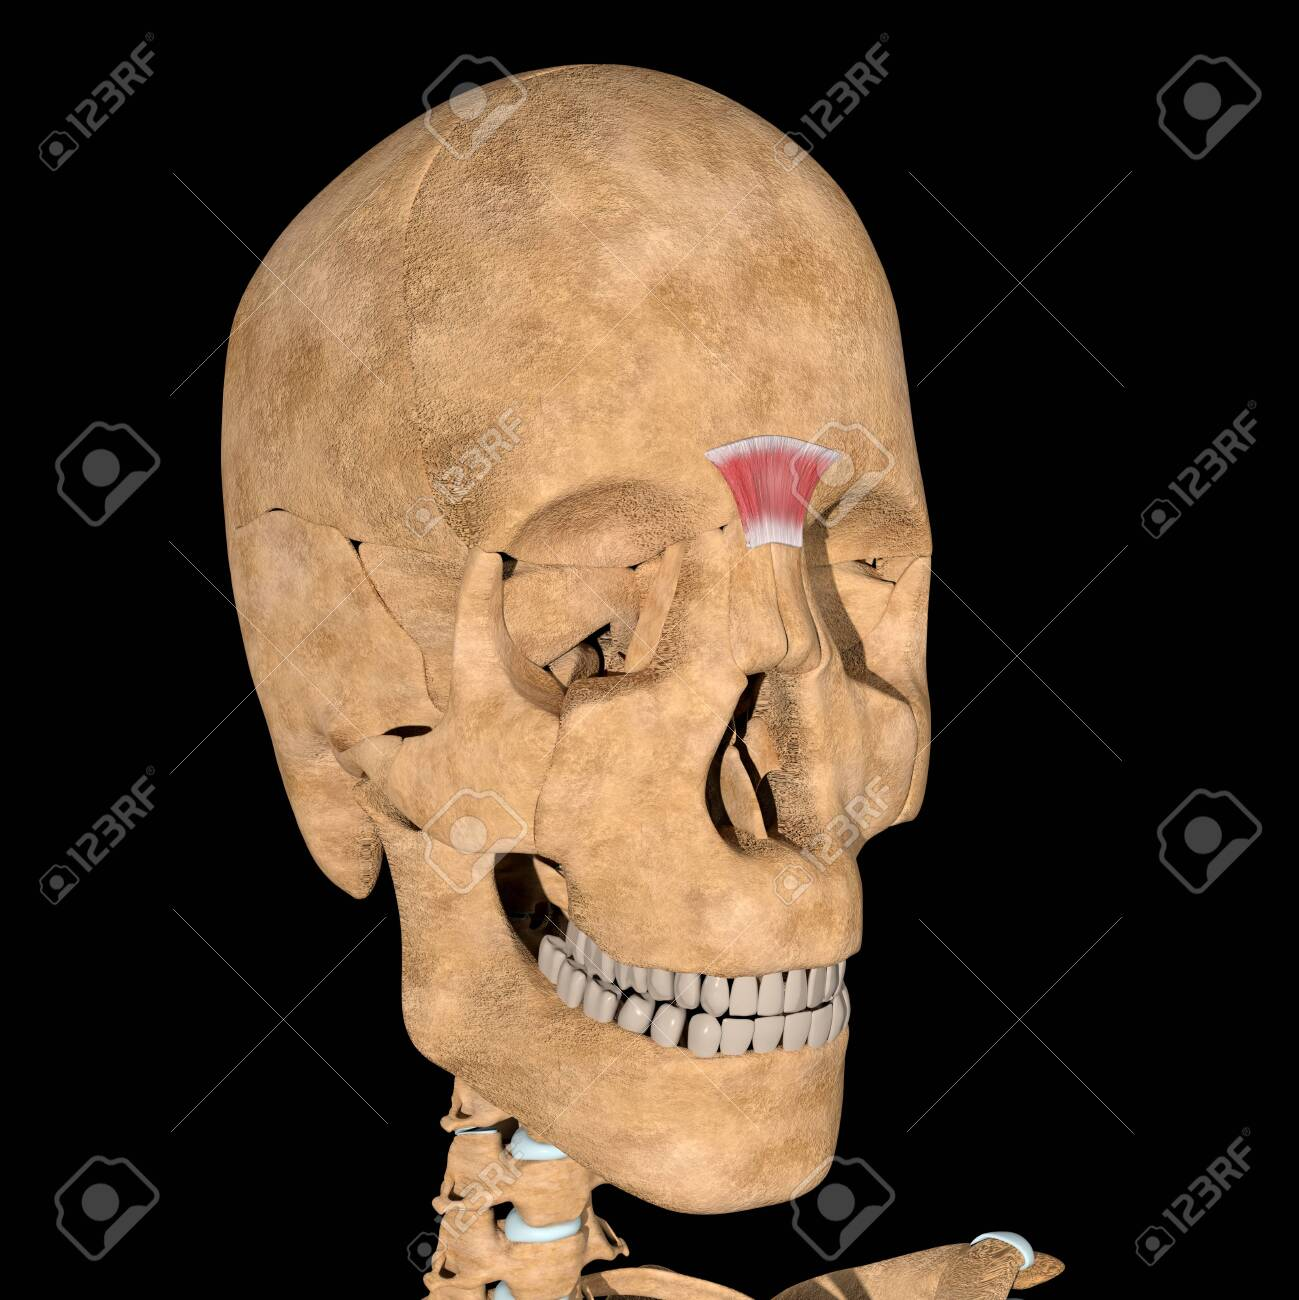 This is a 3d illustration of the procerus muscle on skeleton - 141461358